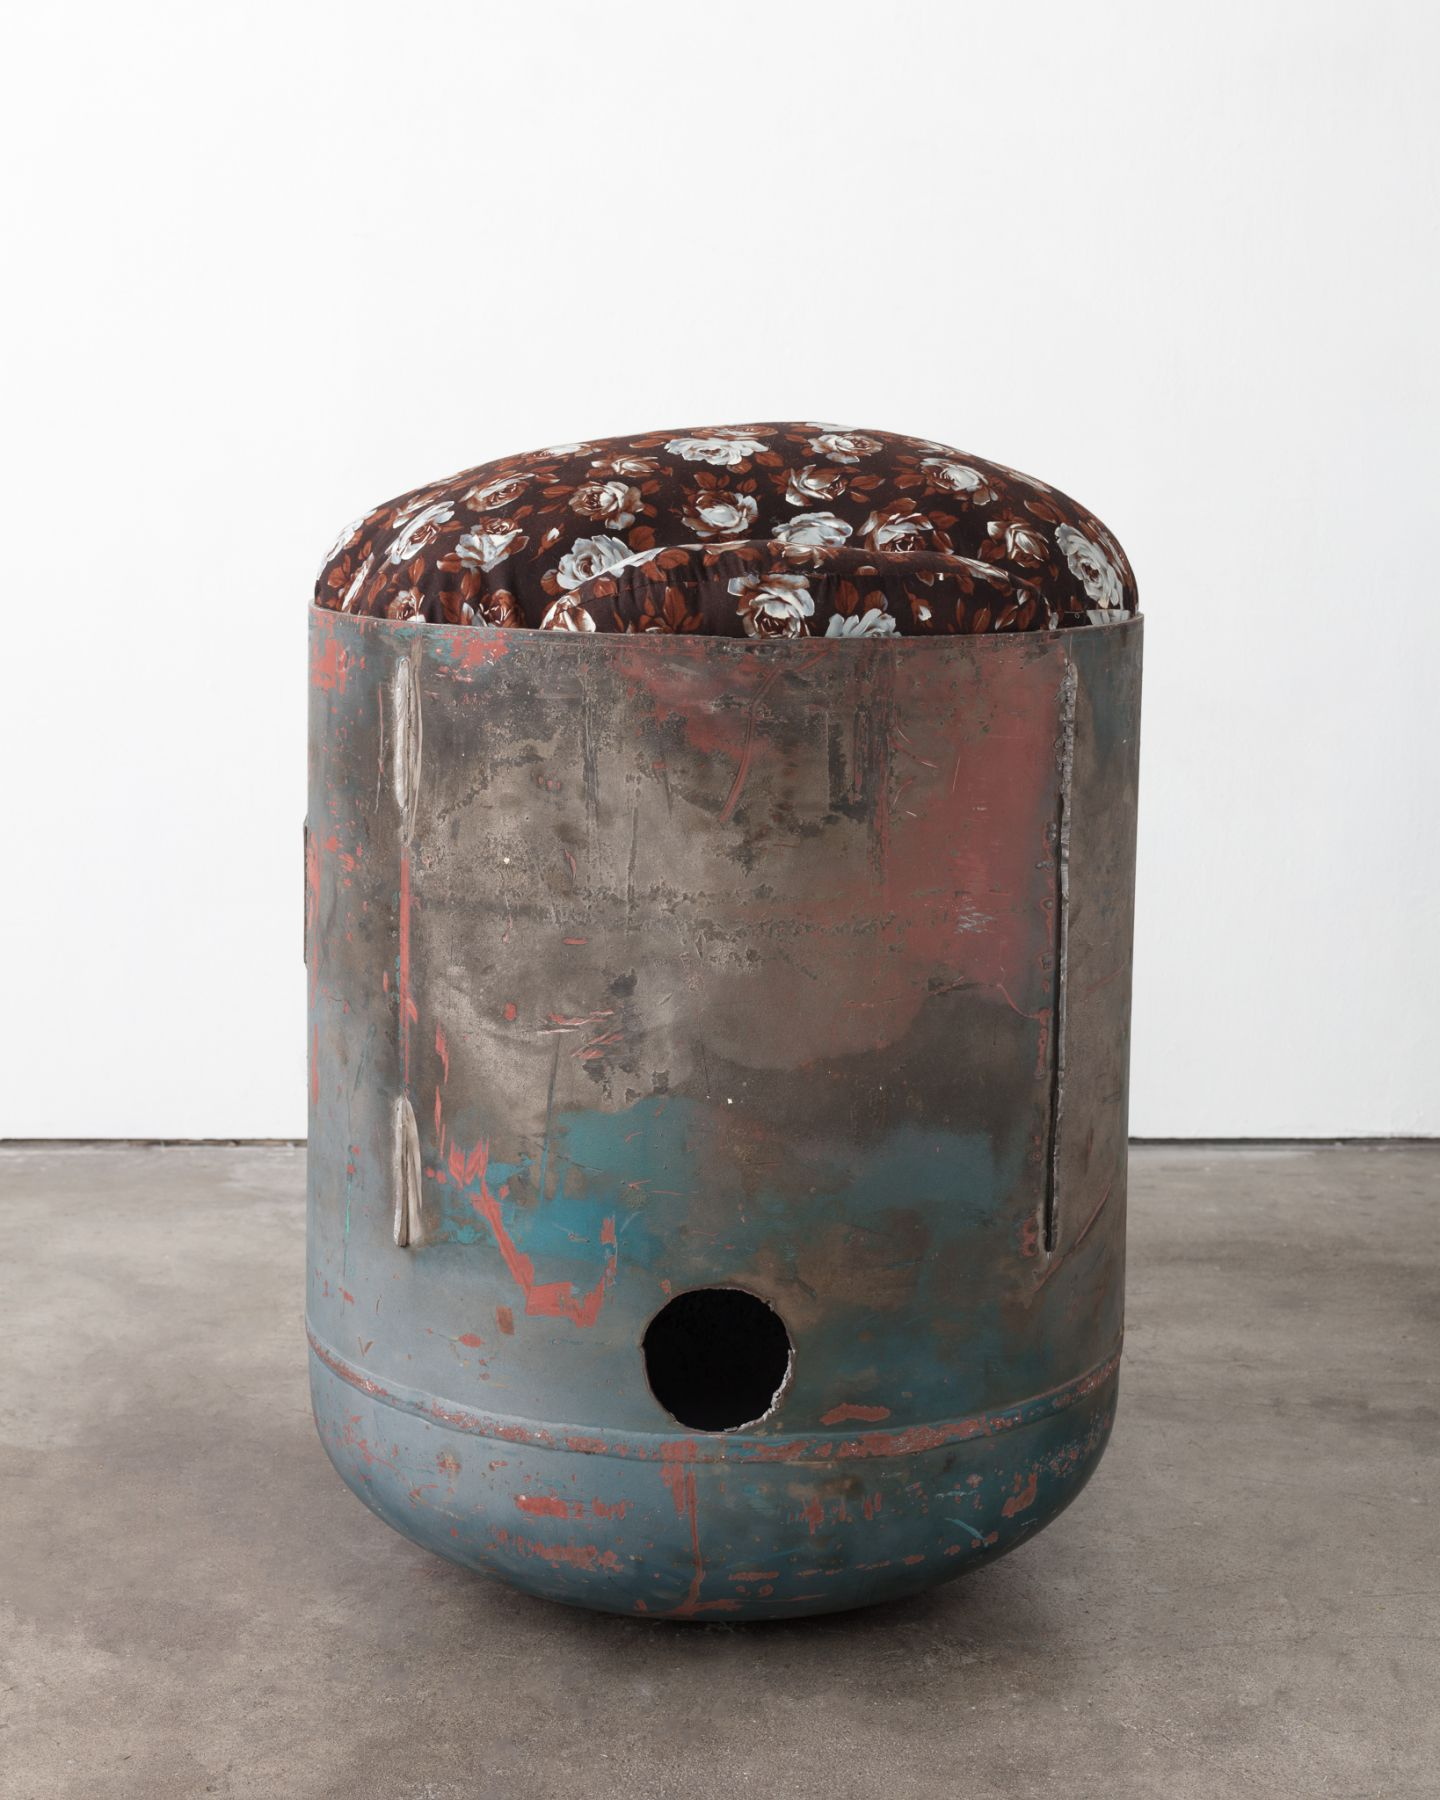 Elad Lassry, Untitled (Pod, Brown Floral, 2), 2018